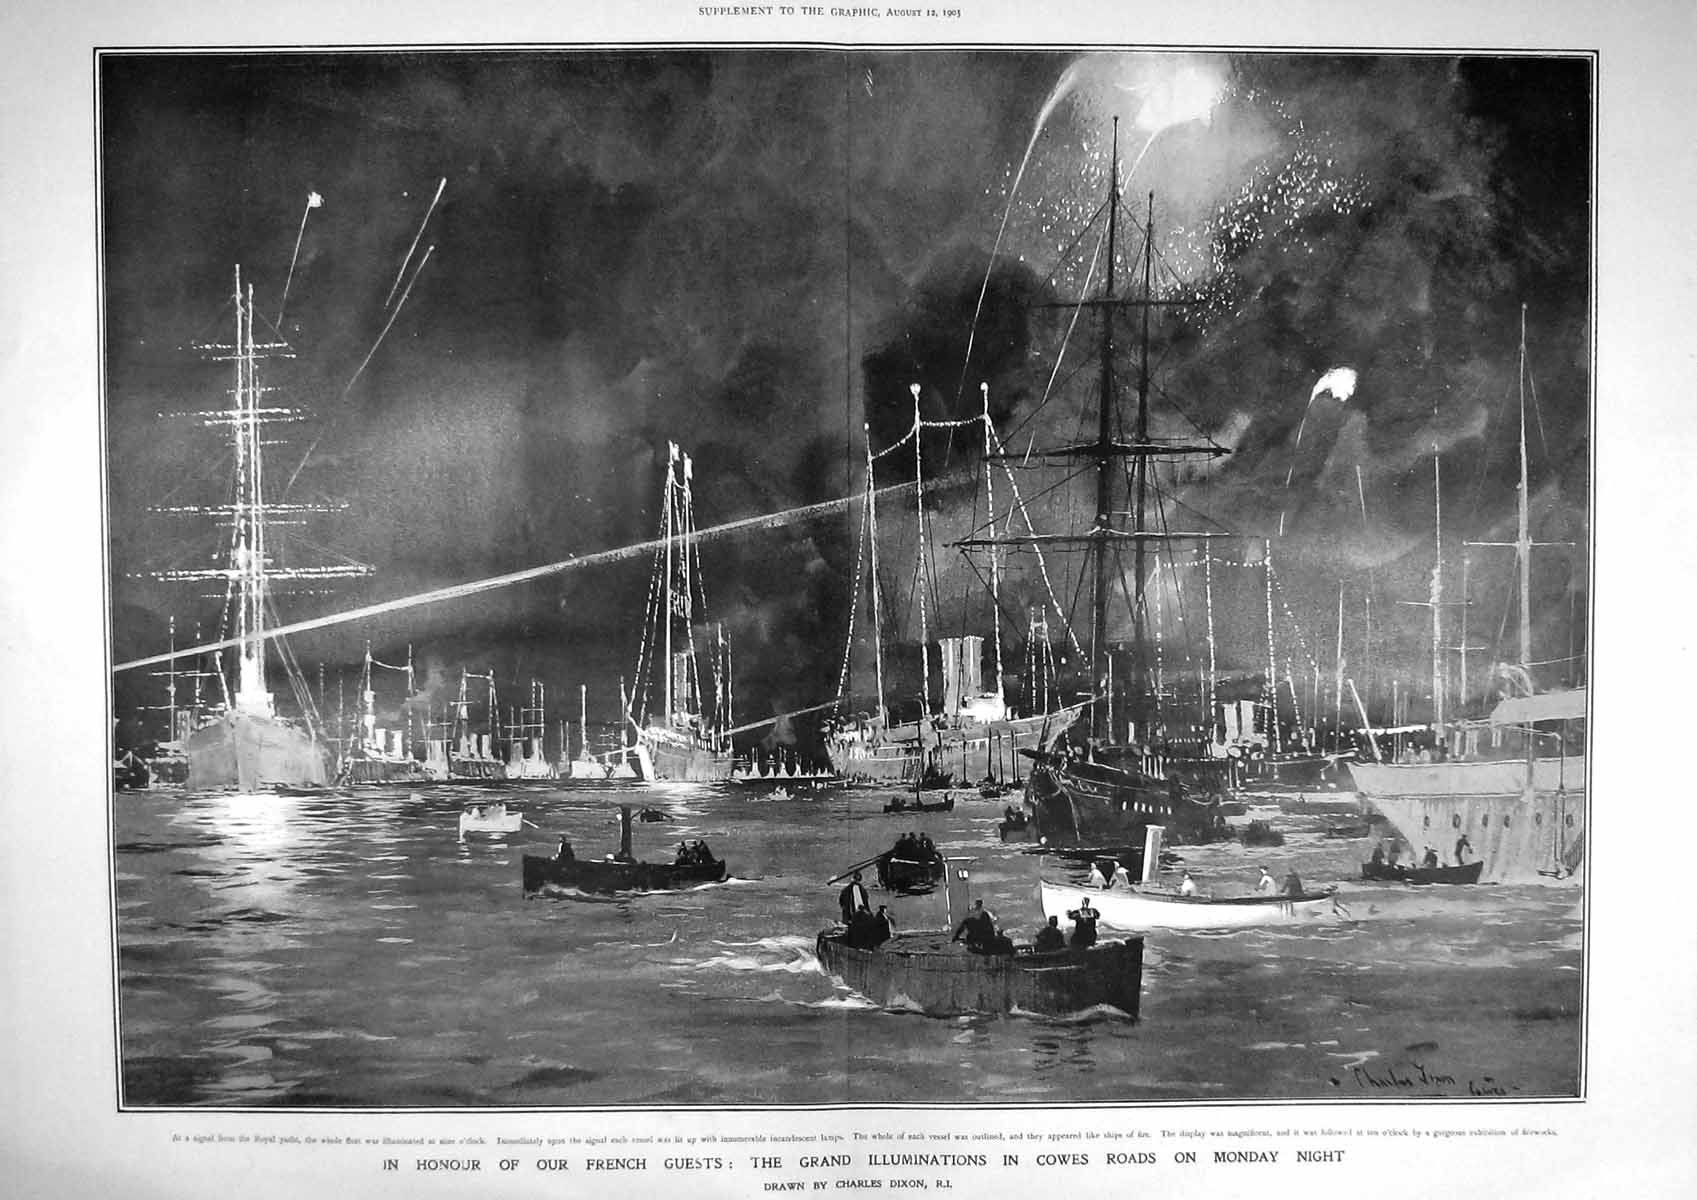 Old-Antique-Print-1905-Illuminations-Cowes-Roads-War-Ships-Royal-Yacht-20th